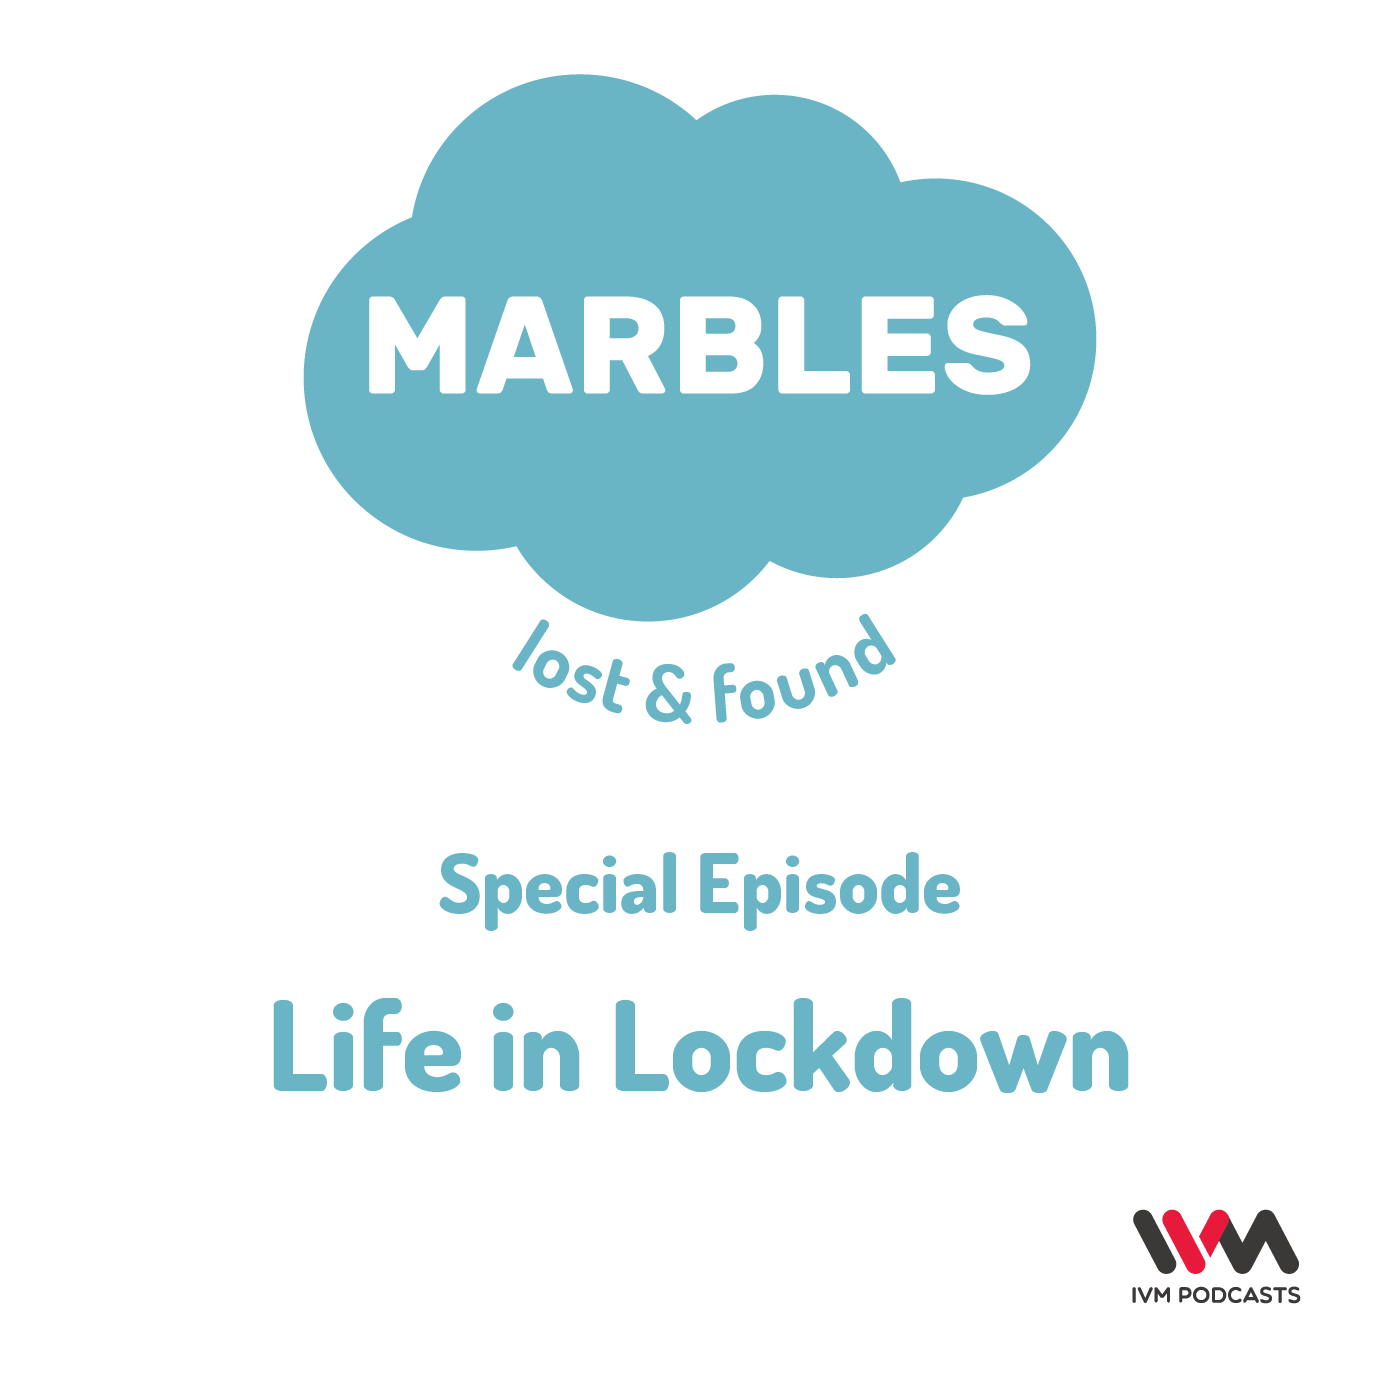 Special Episode : Life in Lockdown